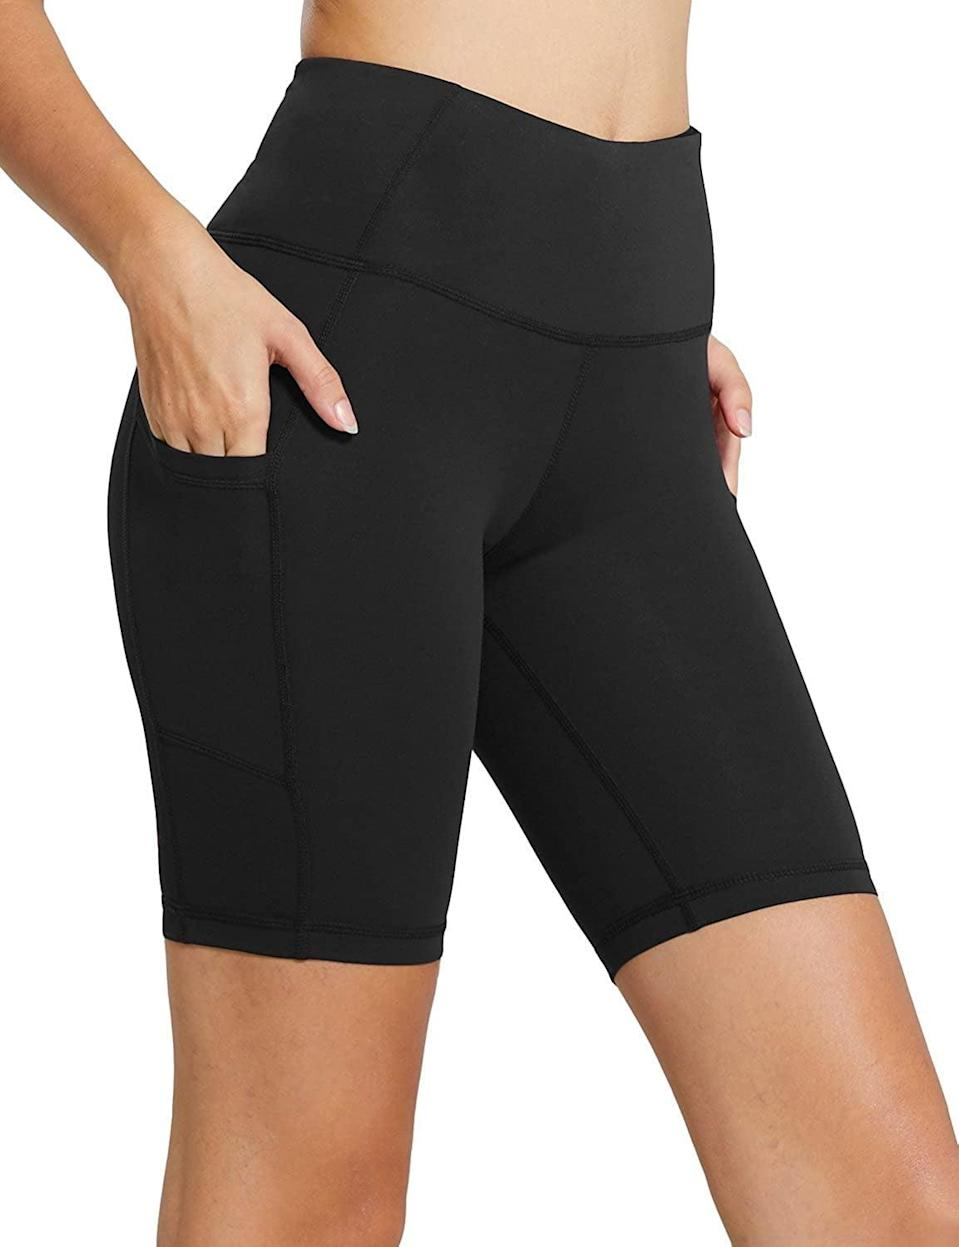 <p>You can easily store your phone and headphones in these <span>Baleaf High Waist Workout Shorts</span> ($20, originally $22).</p>